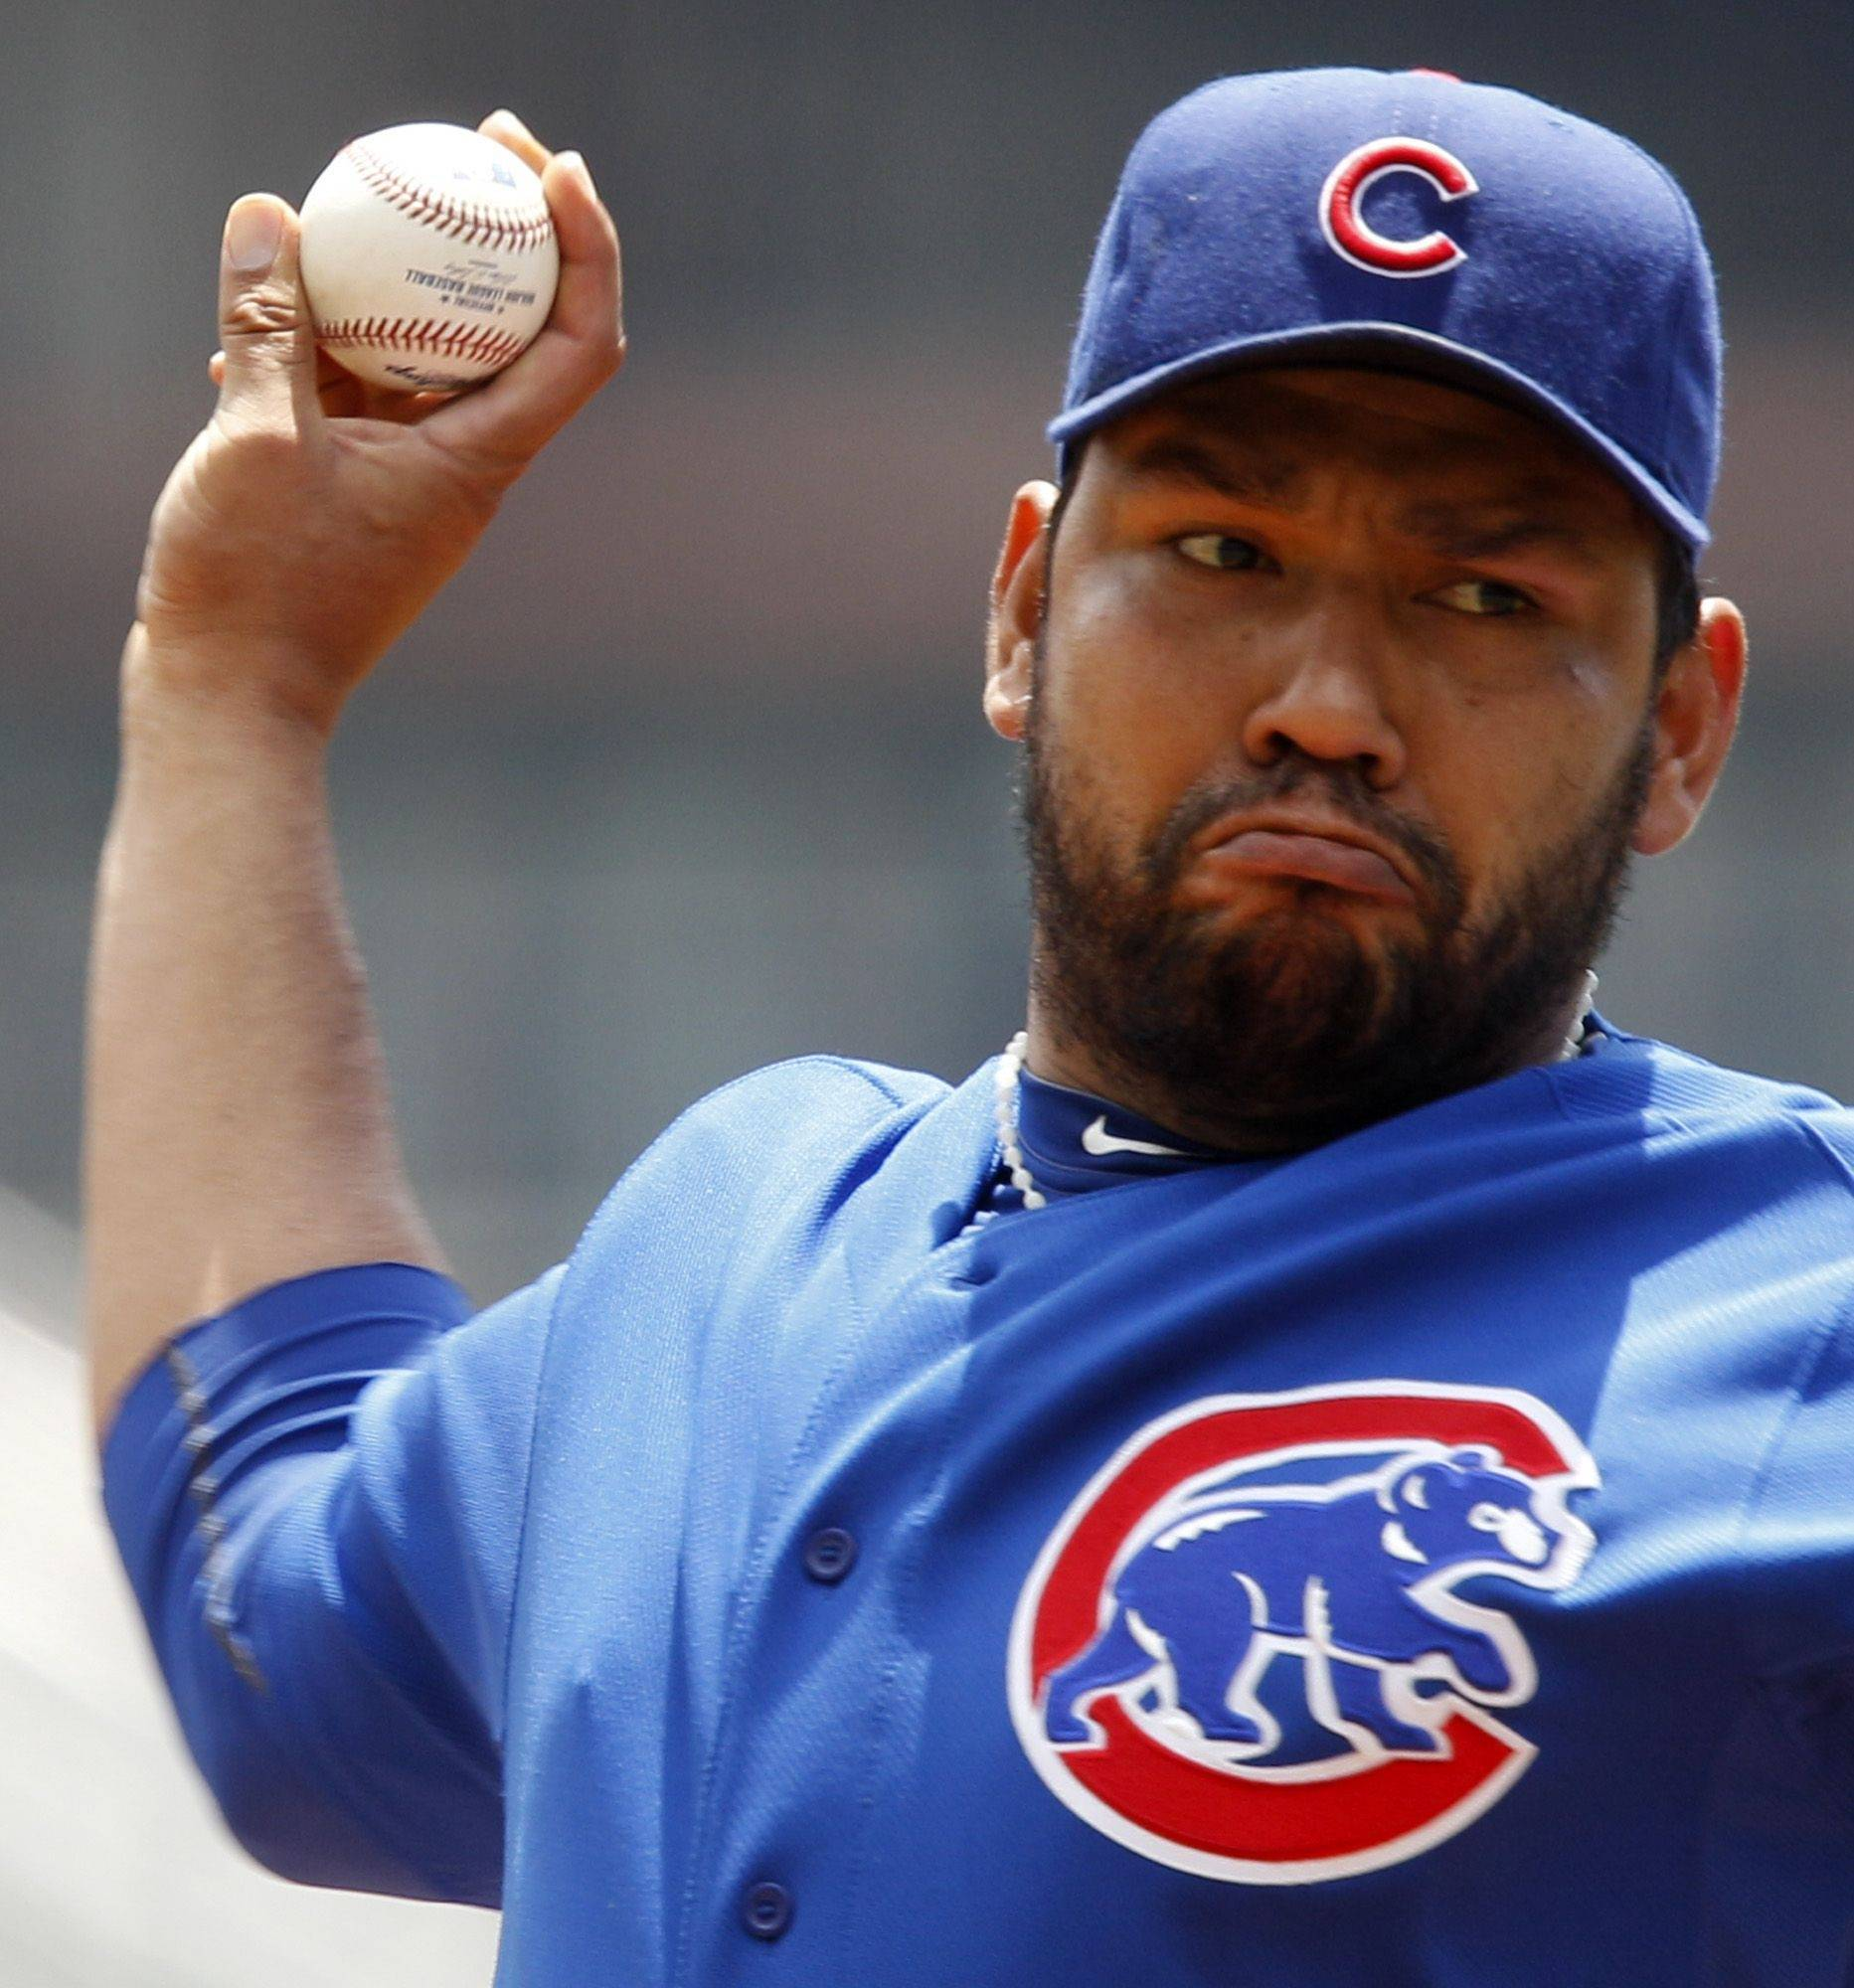 Silva has good outing for Cubs in win